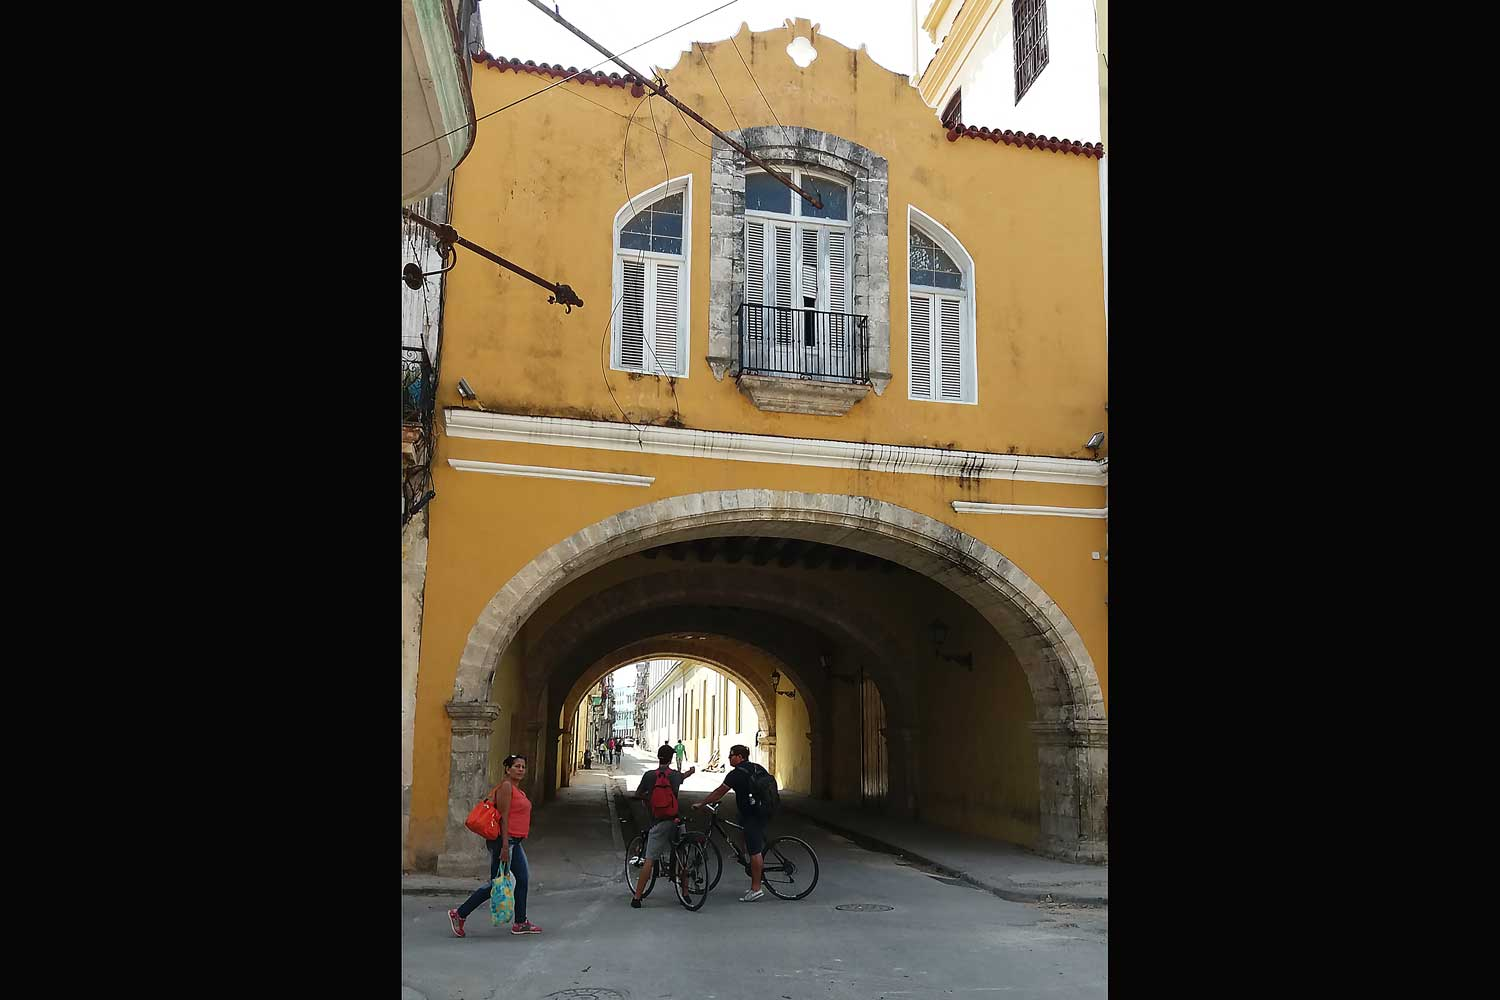 Bycicles at the Arch of Bethlehem Havana Cuba during a biking tour